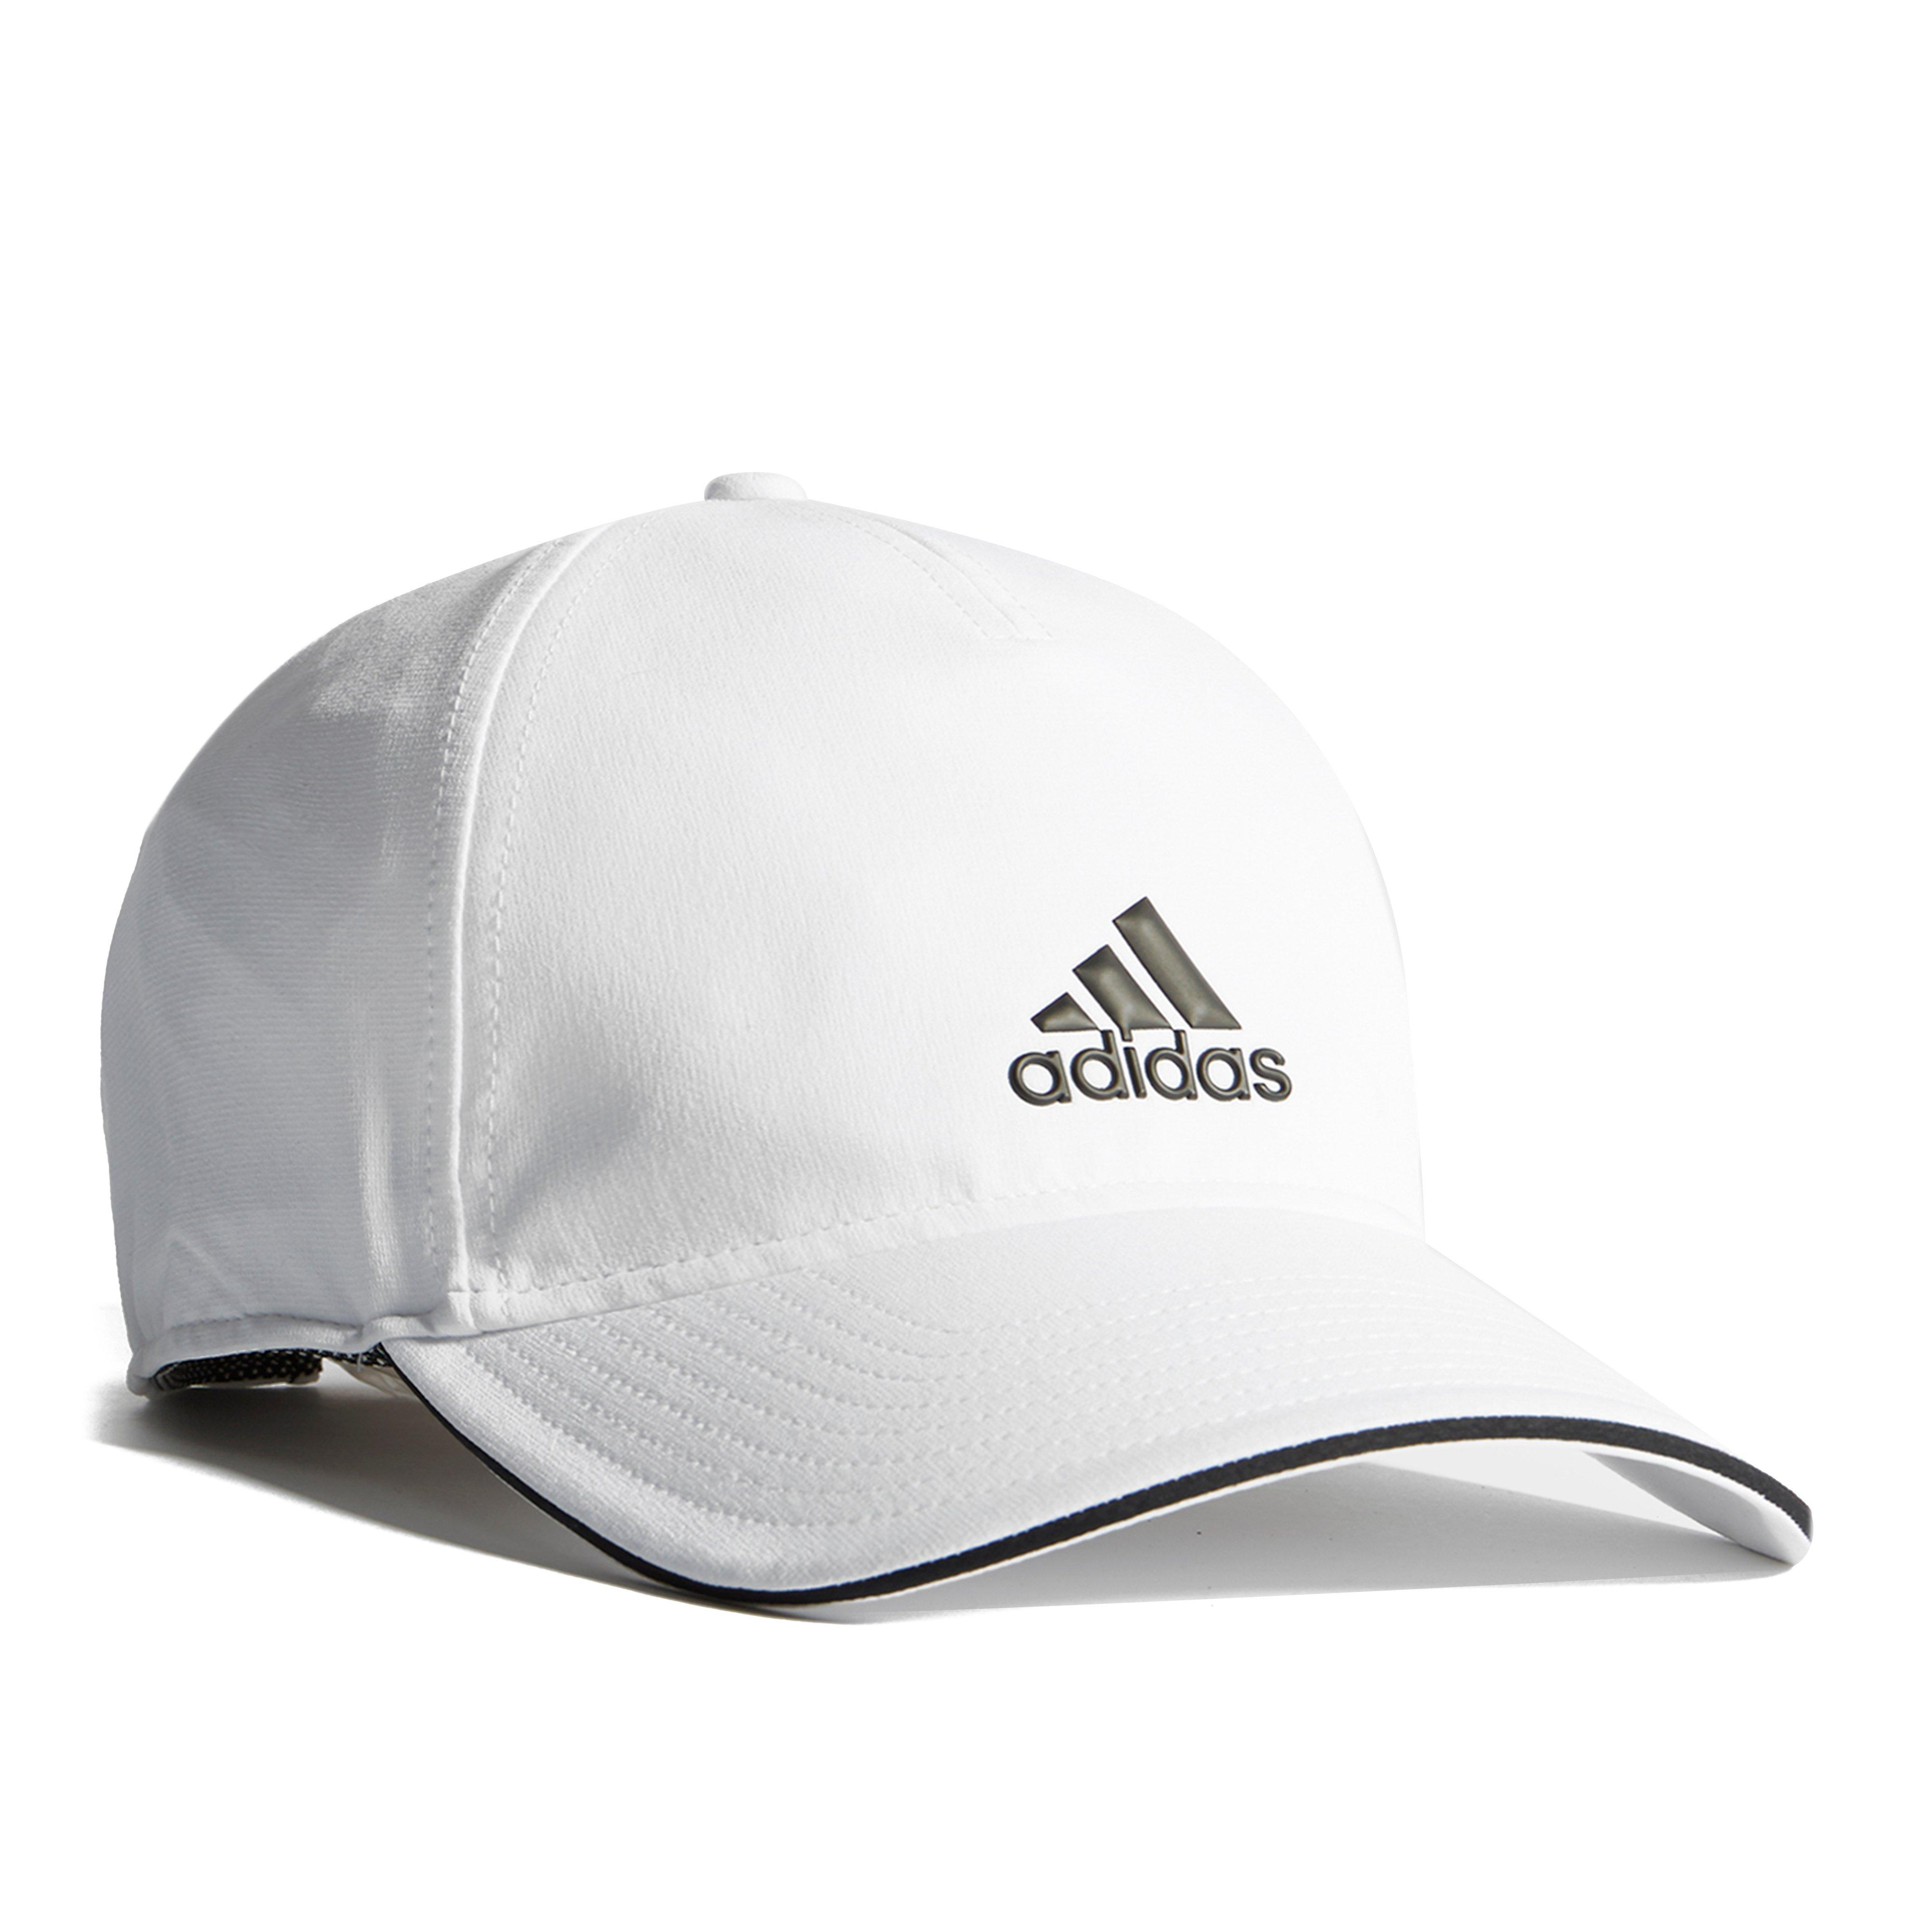 new arrival e4dc2 e9a80 Details about New adidas C40 5P Comfortable Casual Climalite Cap White